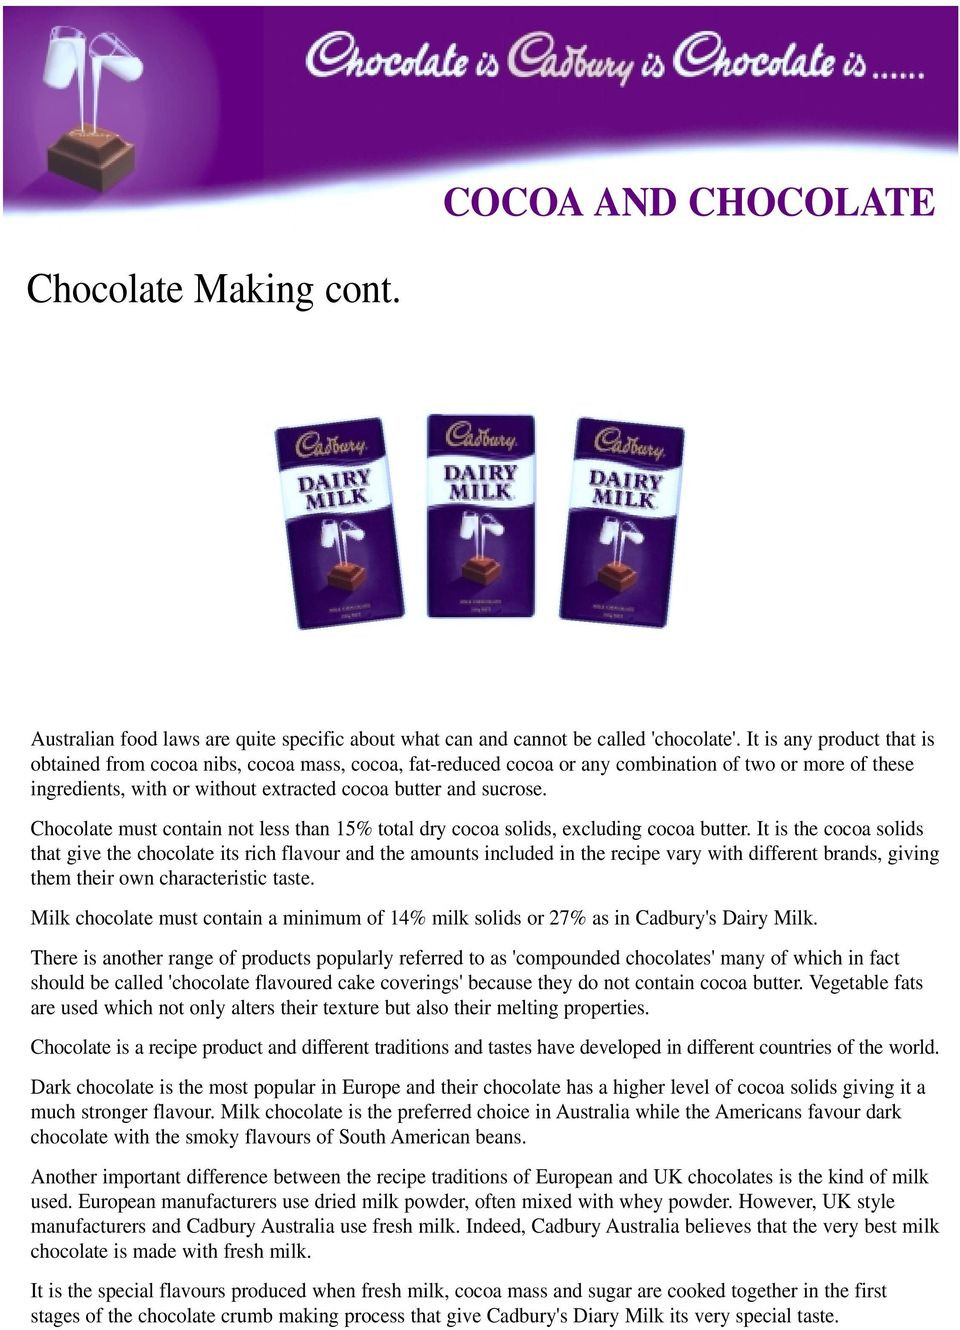 Chocolate must contain not less than 15% total dry cocoa solids, excluding cocoa butter.